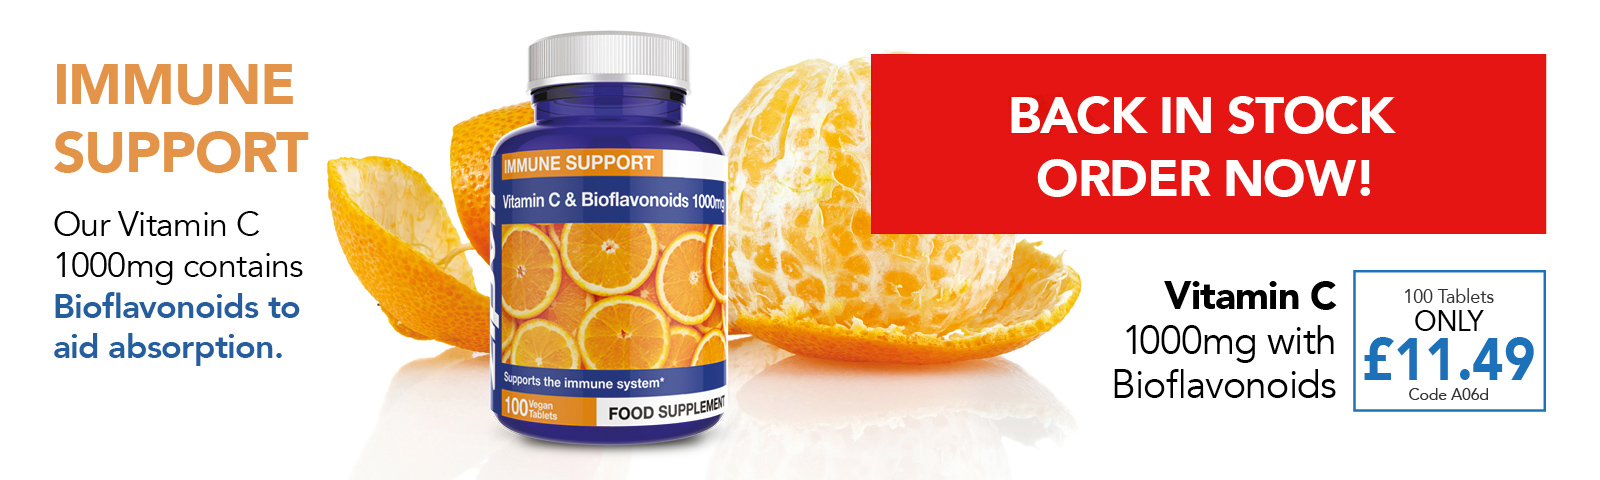 Vitamin C Back In Stock